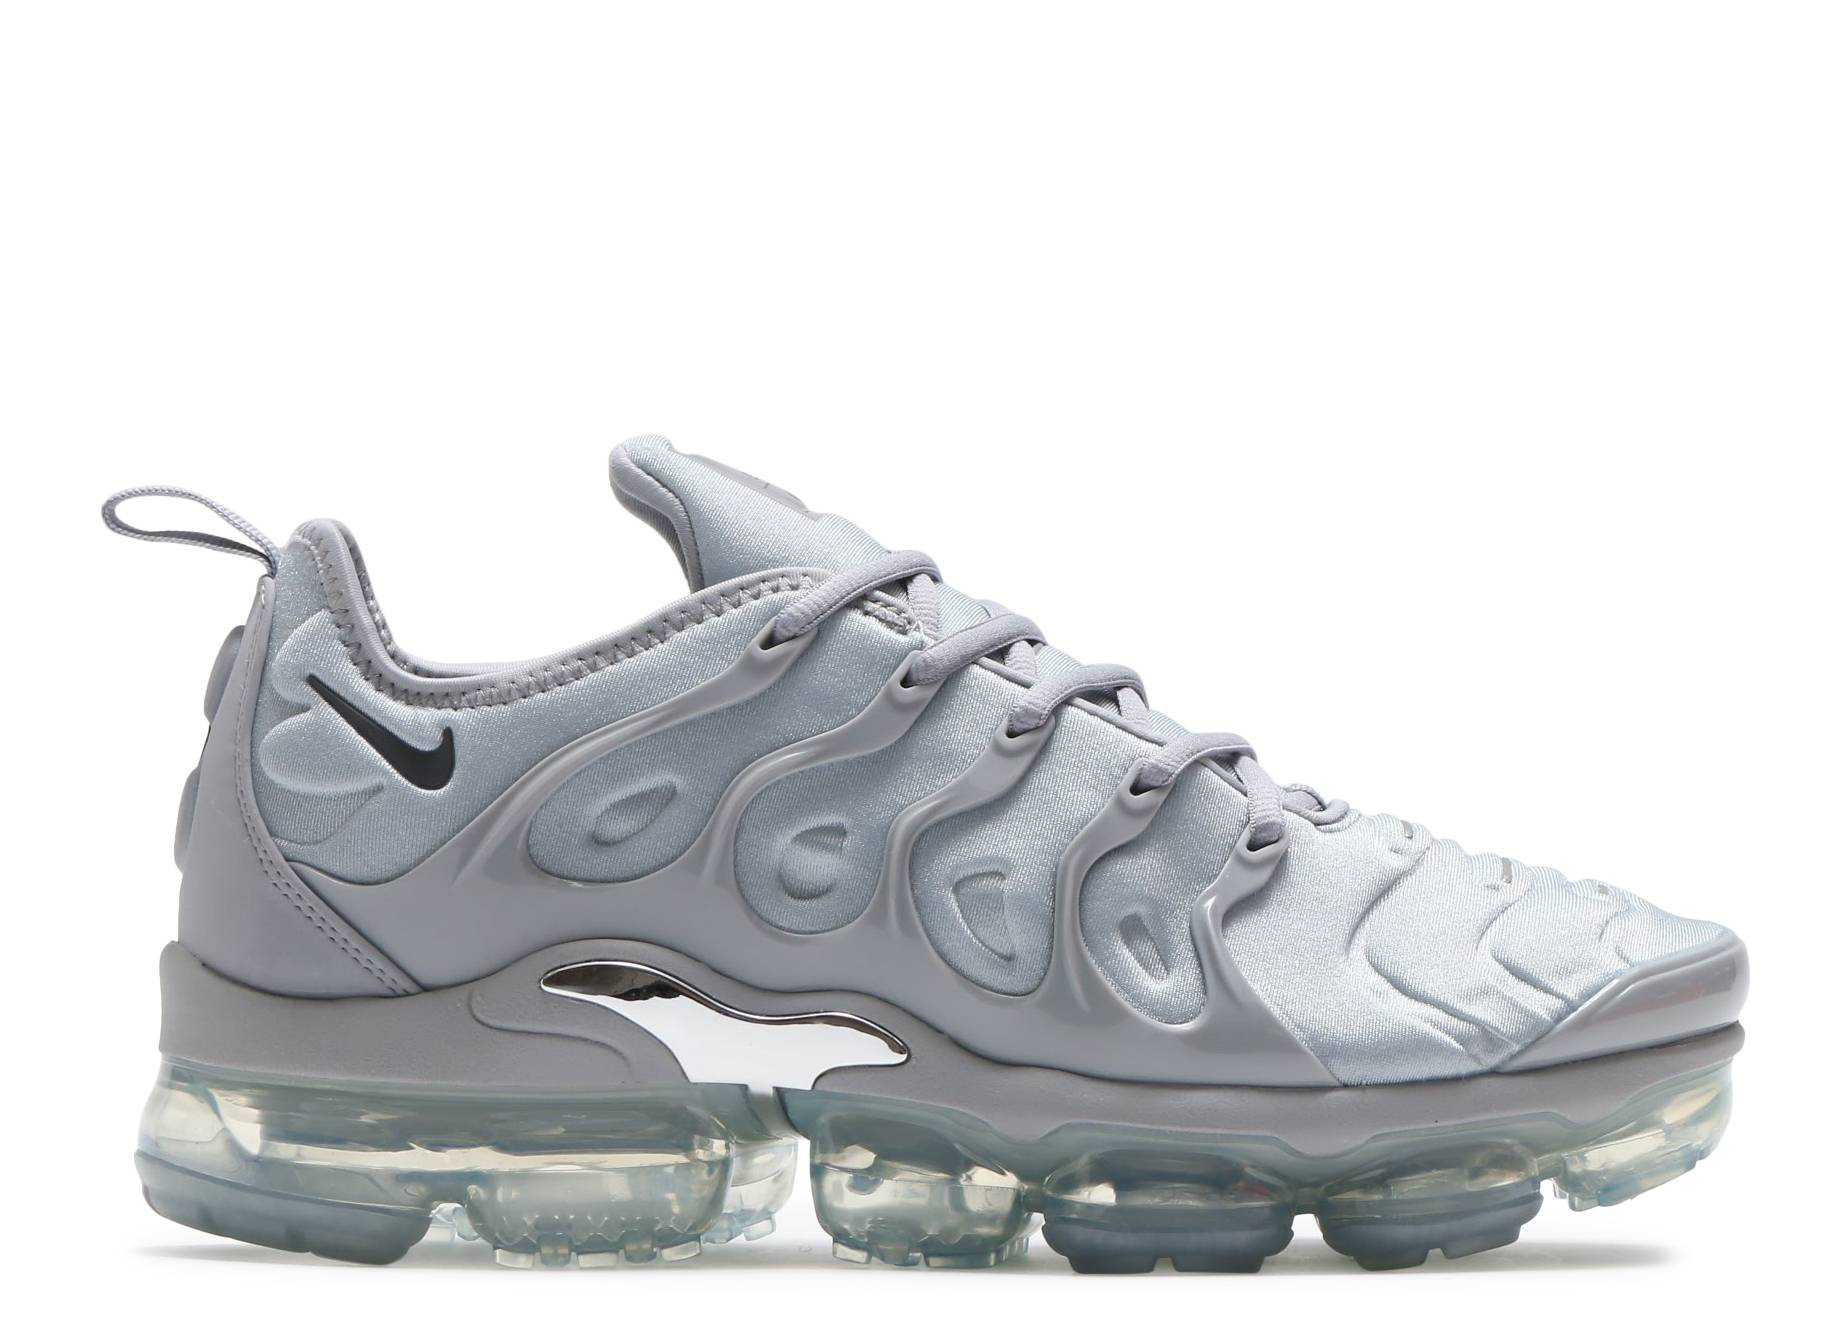 bc0728f4f21 AIR VAPORMAX PLUS - Nike - 924453 005 - wolf grey dark grey-metallic ...